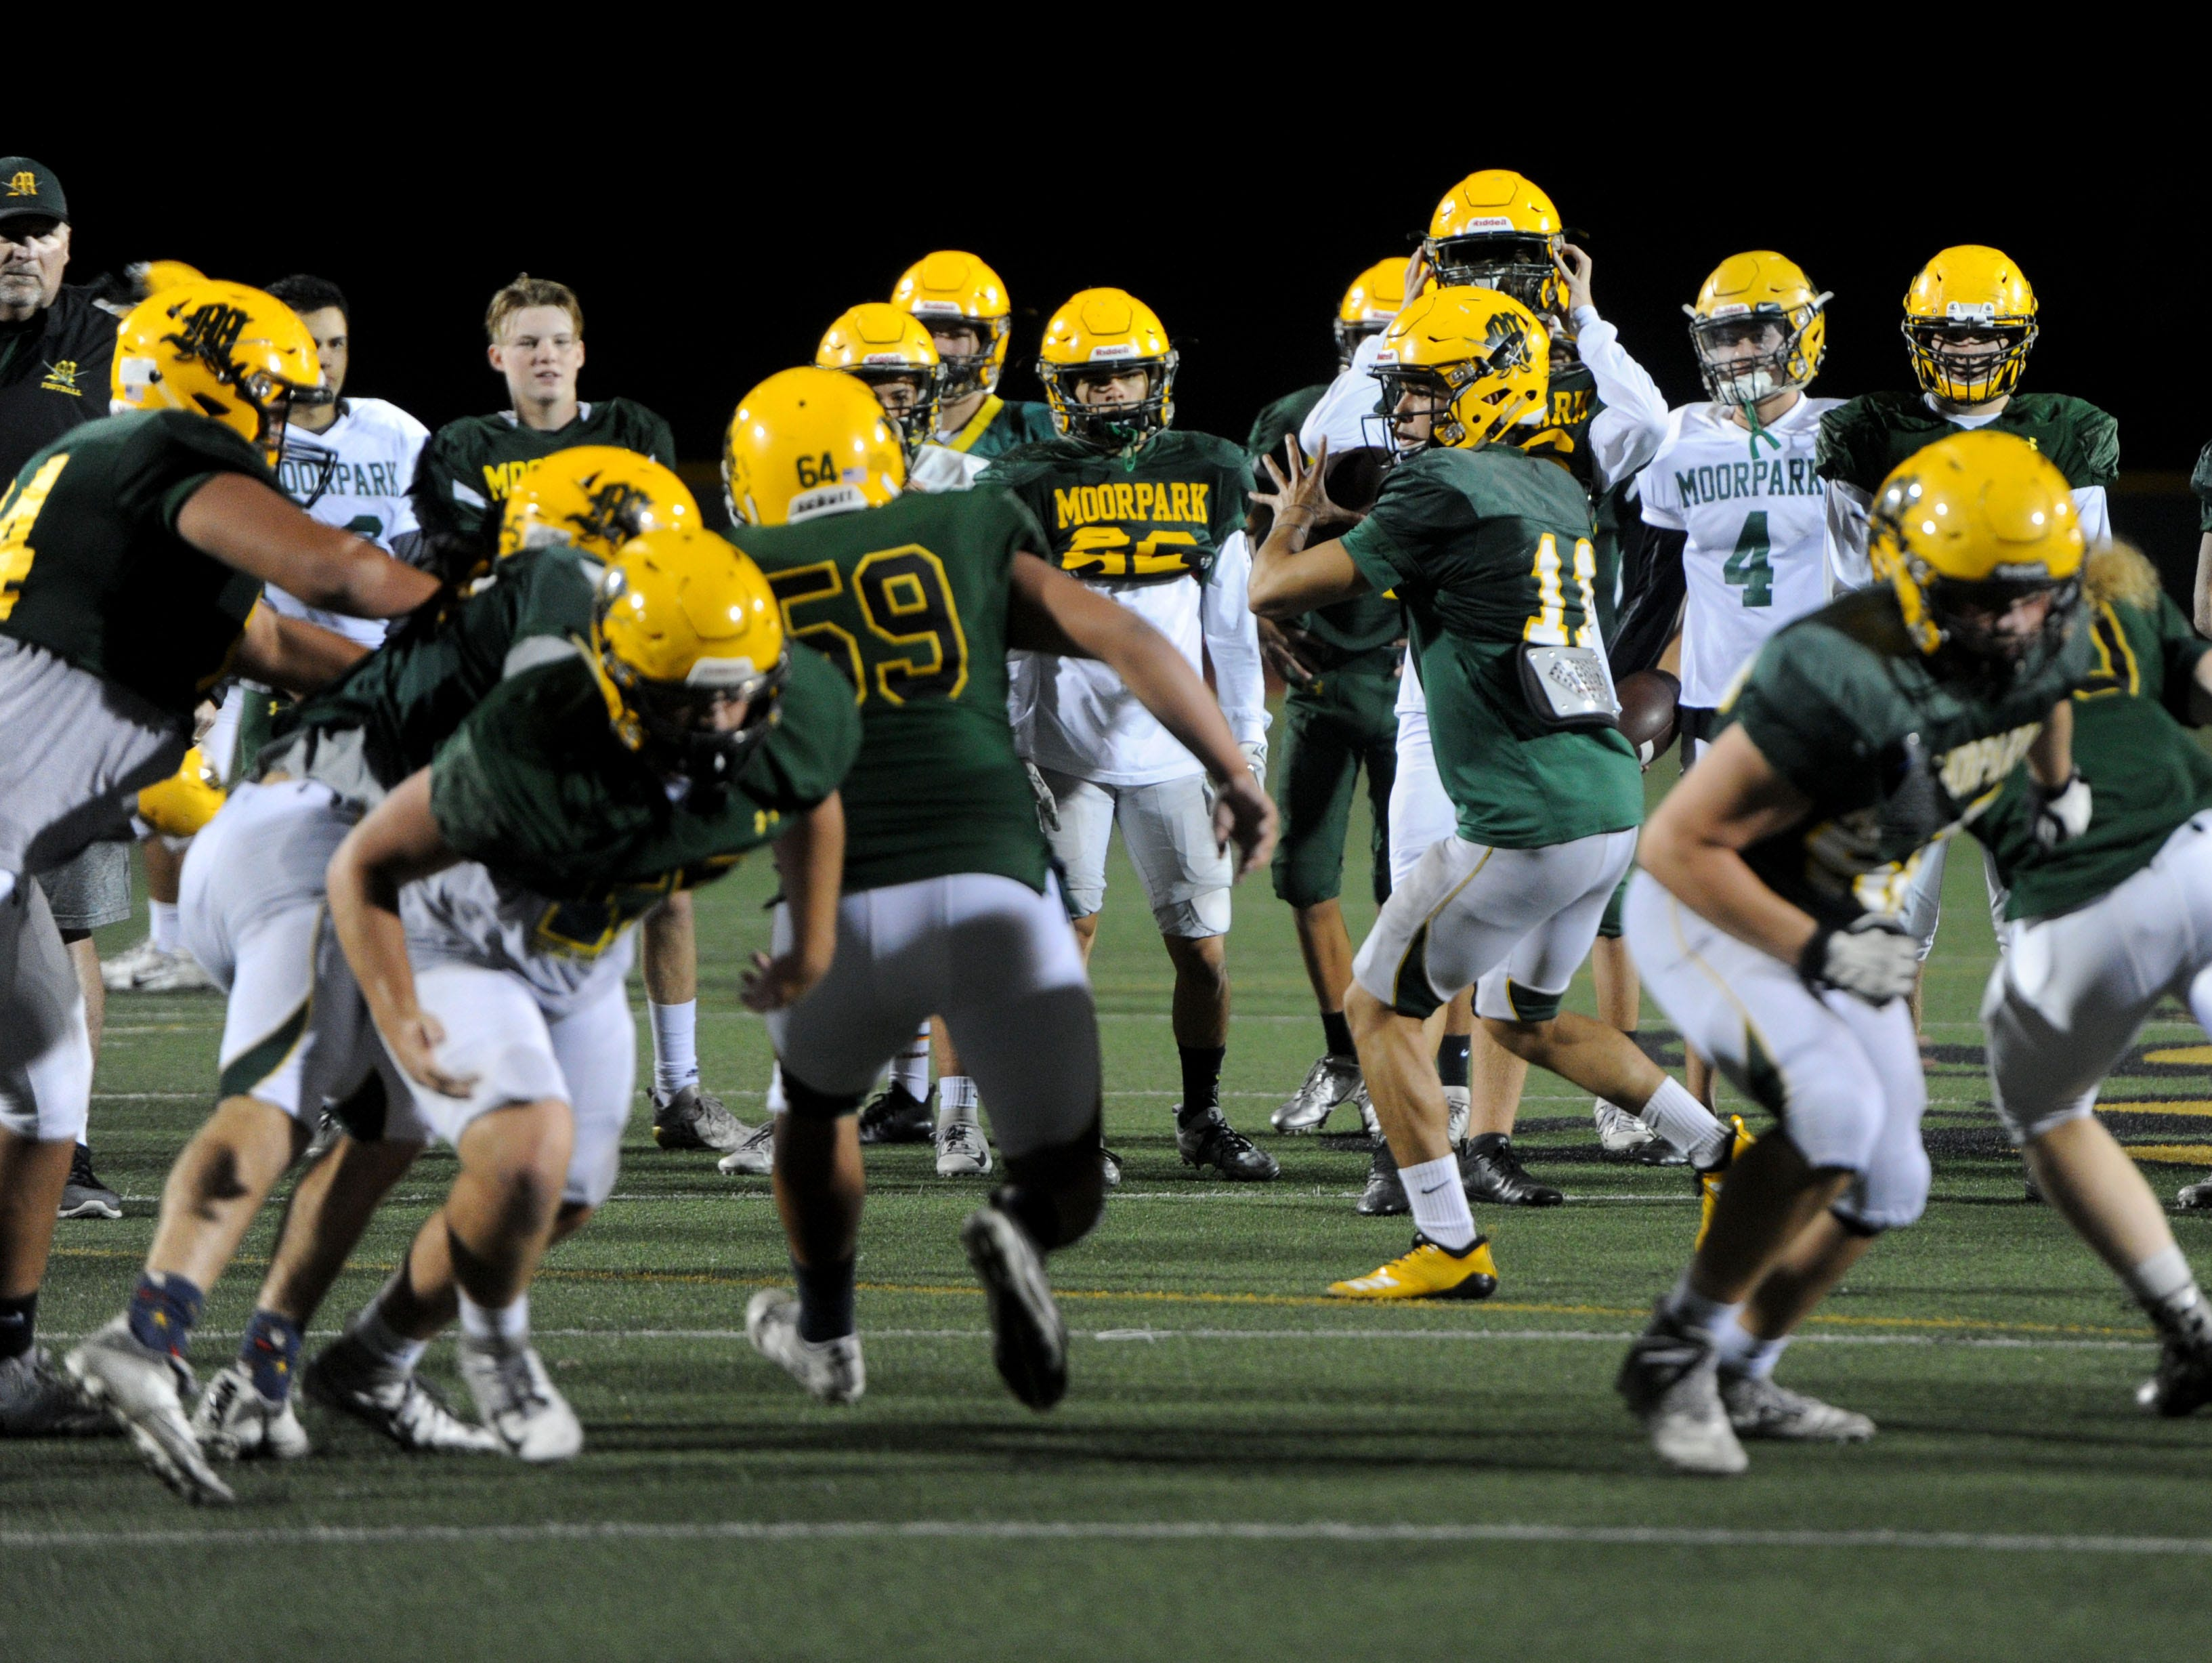 Moorpark High goes through plays during Wednesday's practice. The Musketeers host Sierra Canyon in a Division 3 quarterfinal game Friday night.